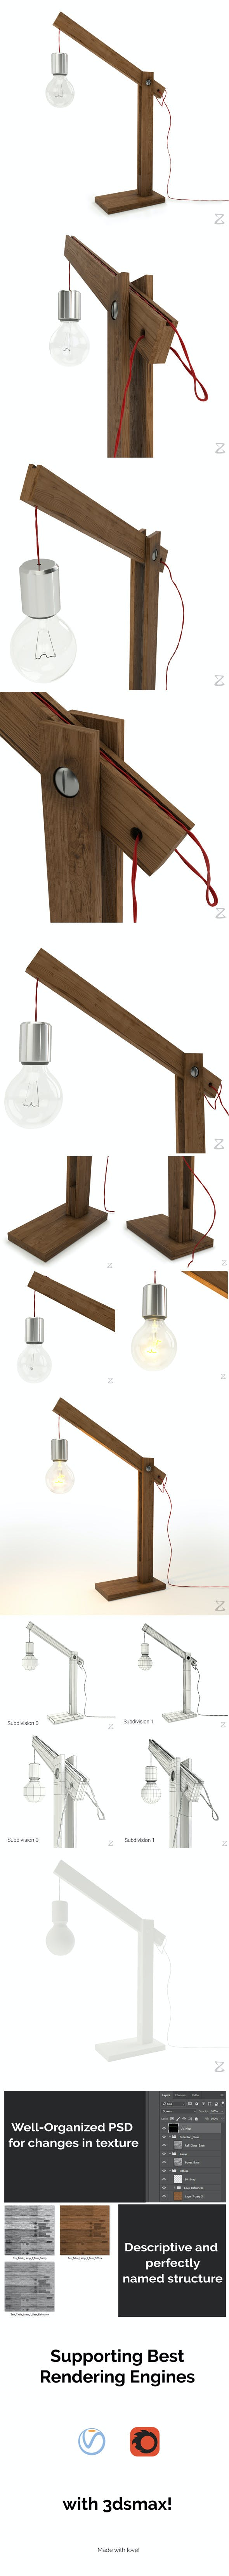 Table Lamp 1 - 3DOcean Item for Sale